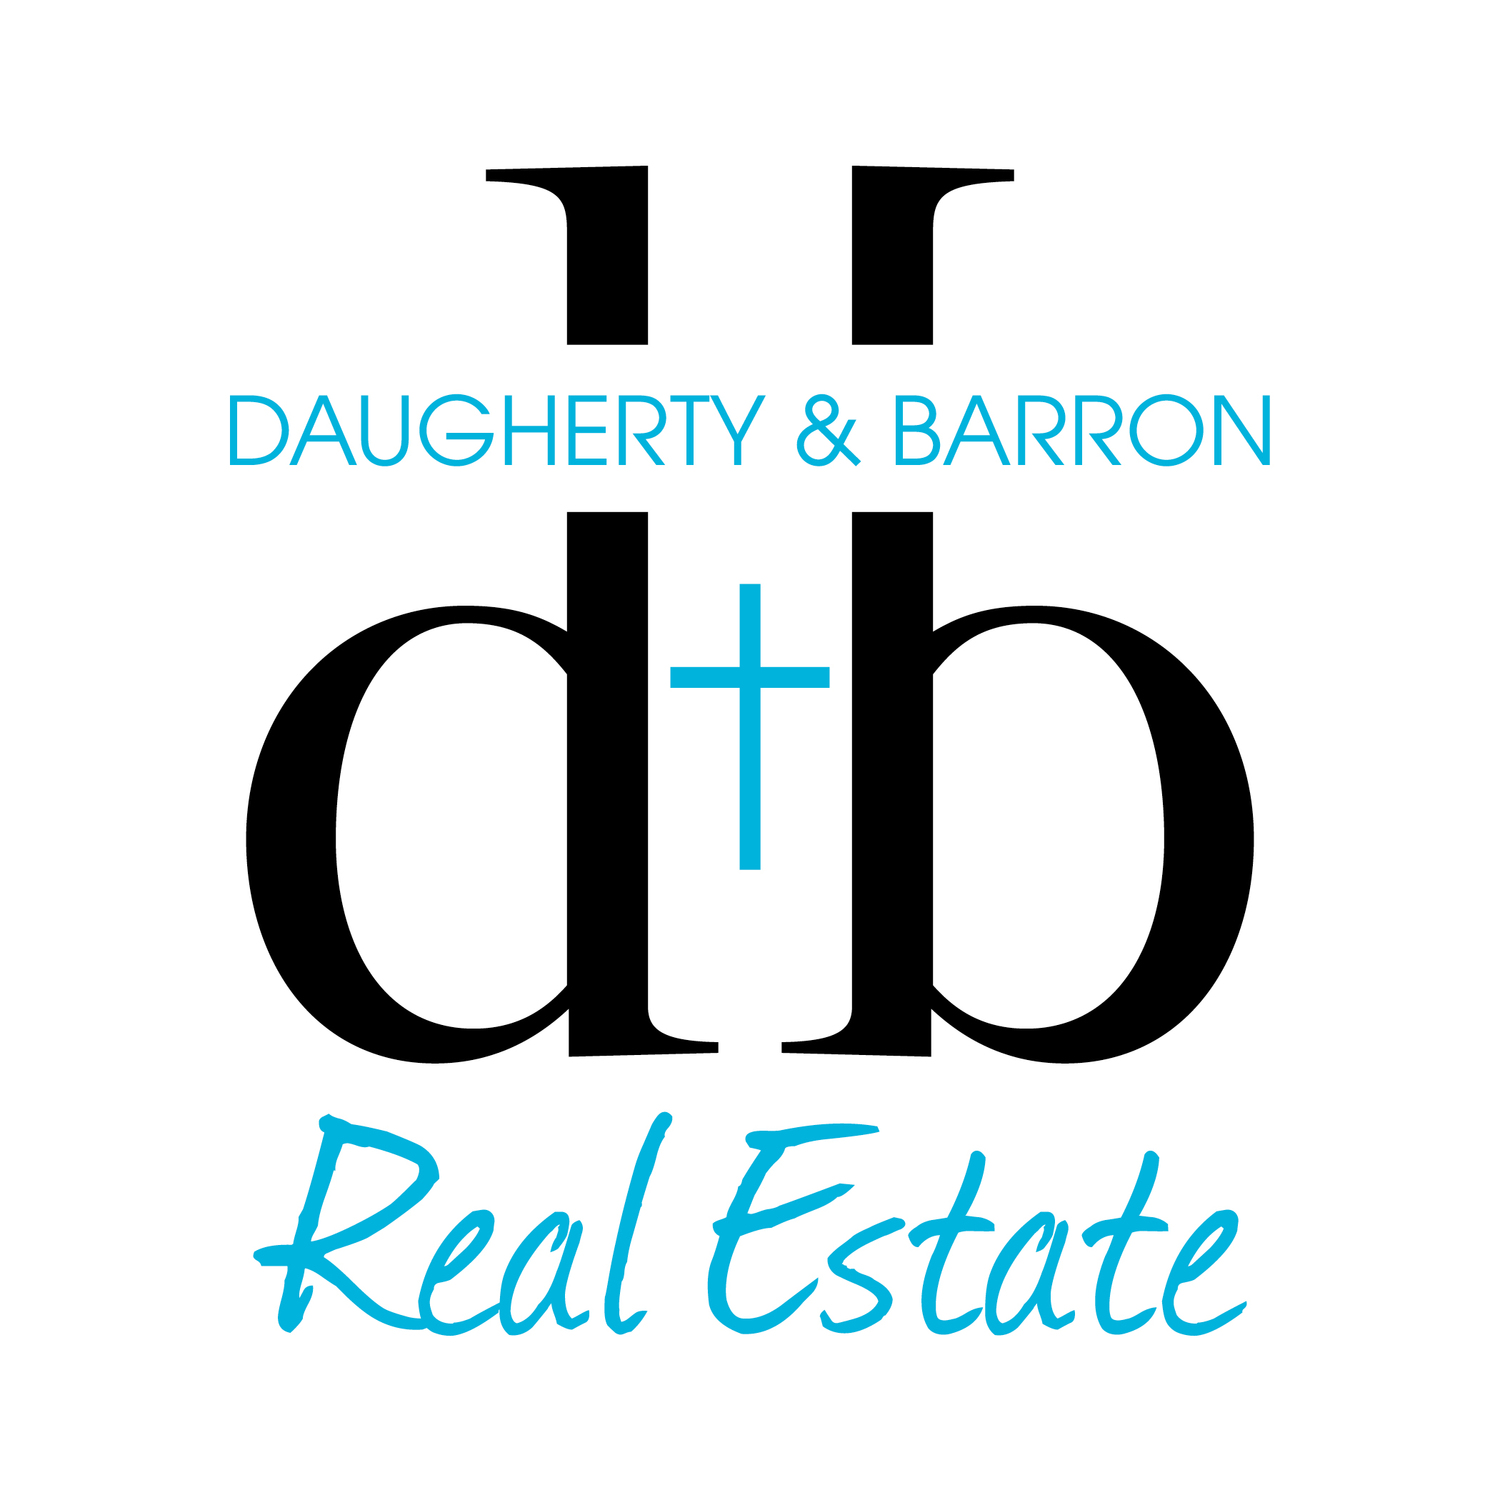 Daugherty & Barron Real Estate